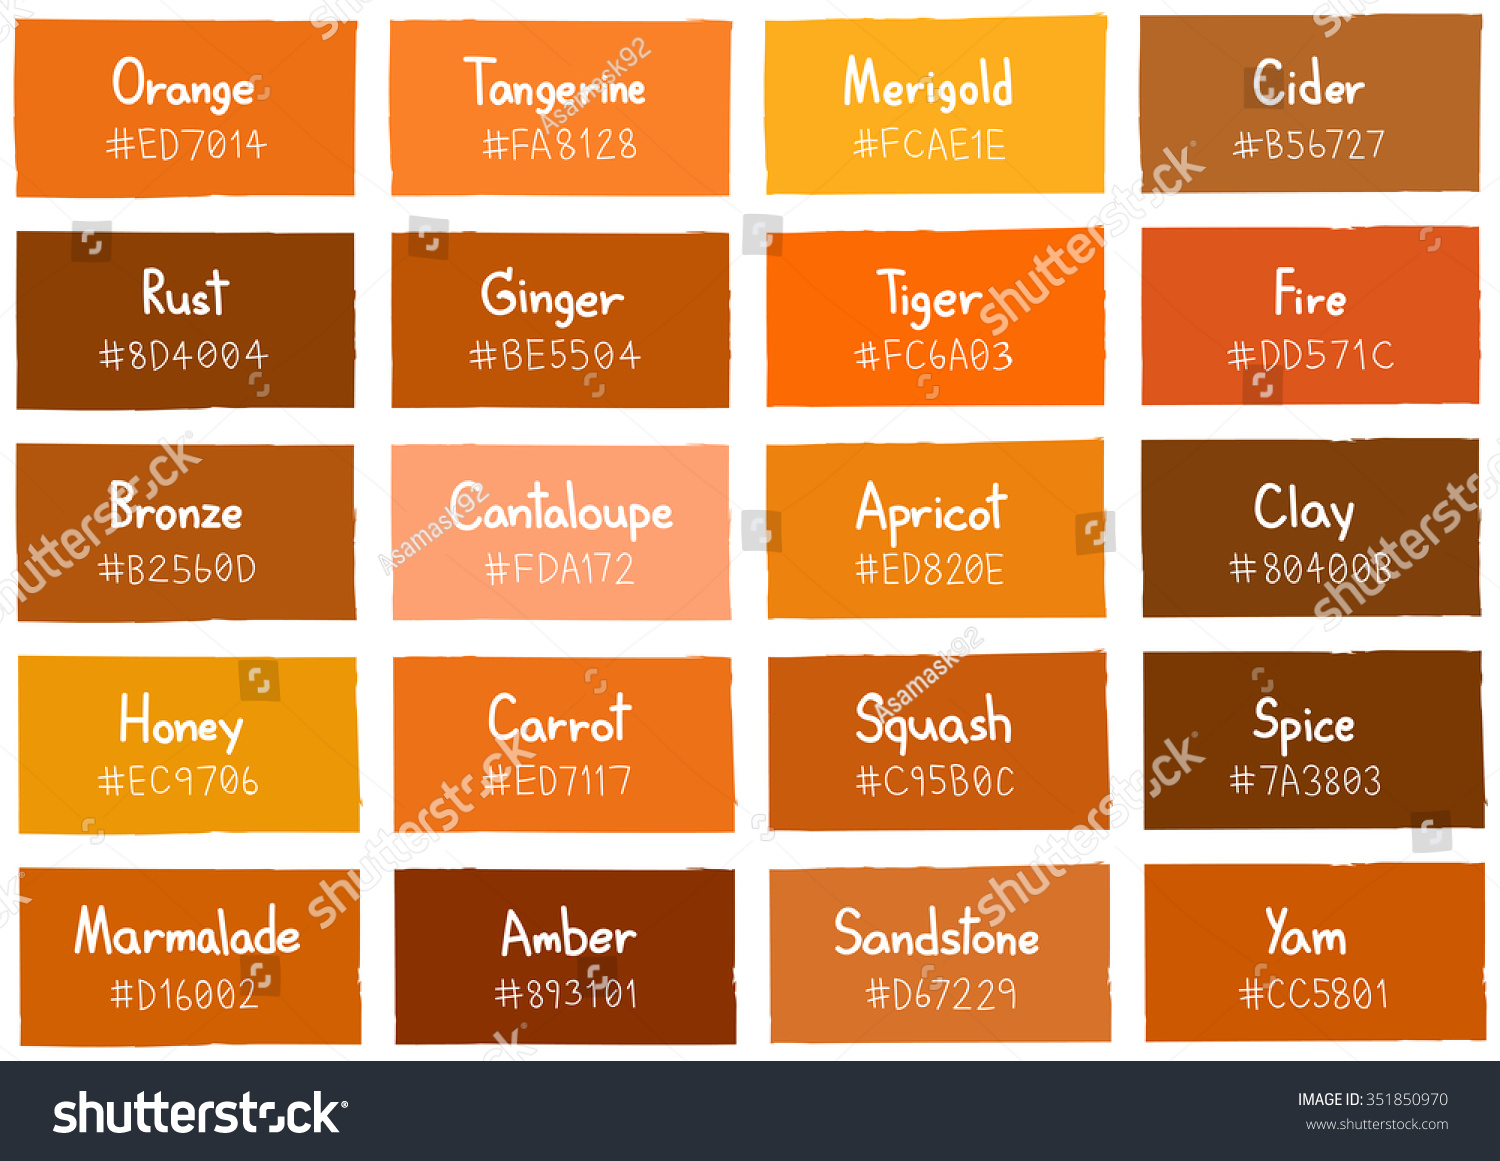 Orange Paint Color Chart Pictures To Pin On Pinterest